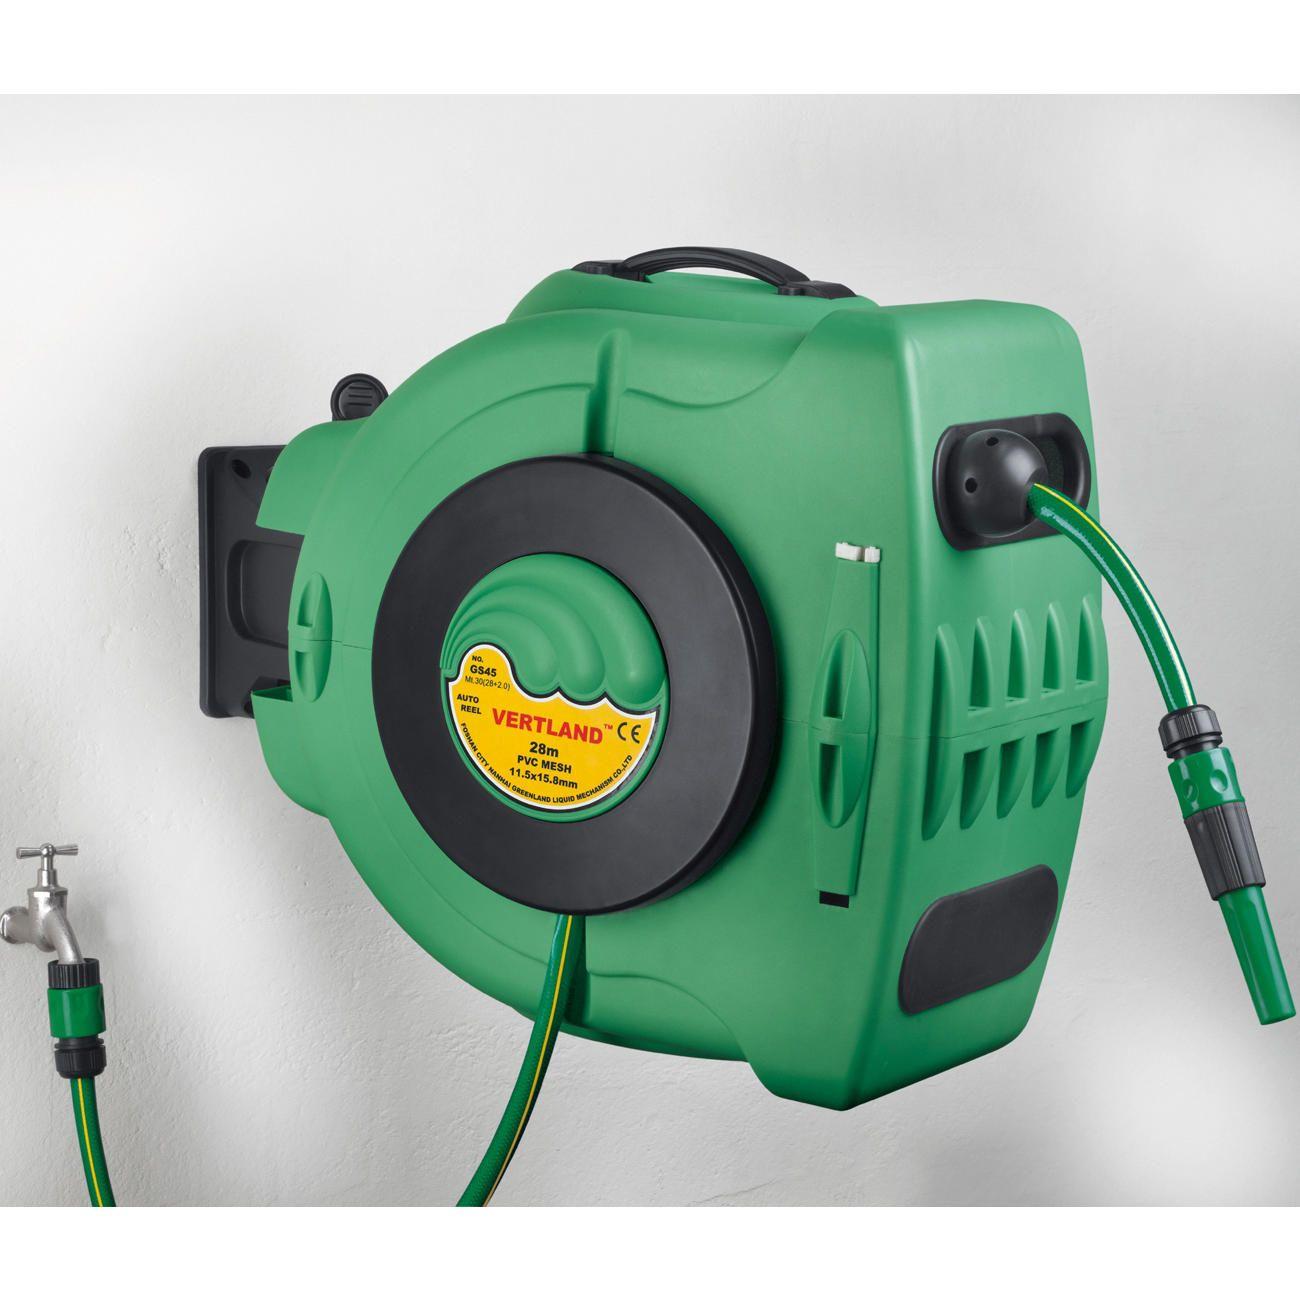 Automatic Hose Reel Winder Clever New Retractable With 90 Feet E